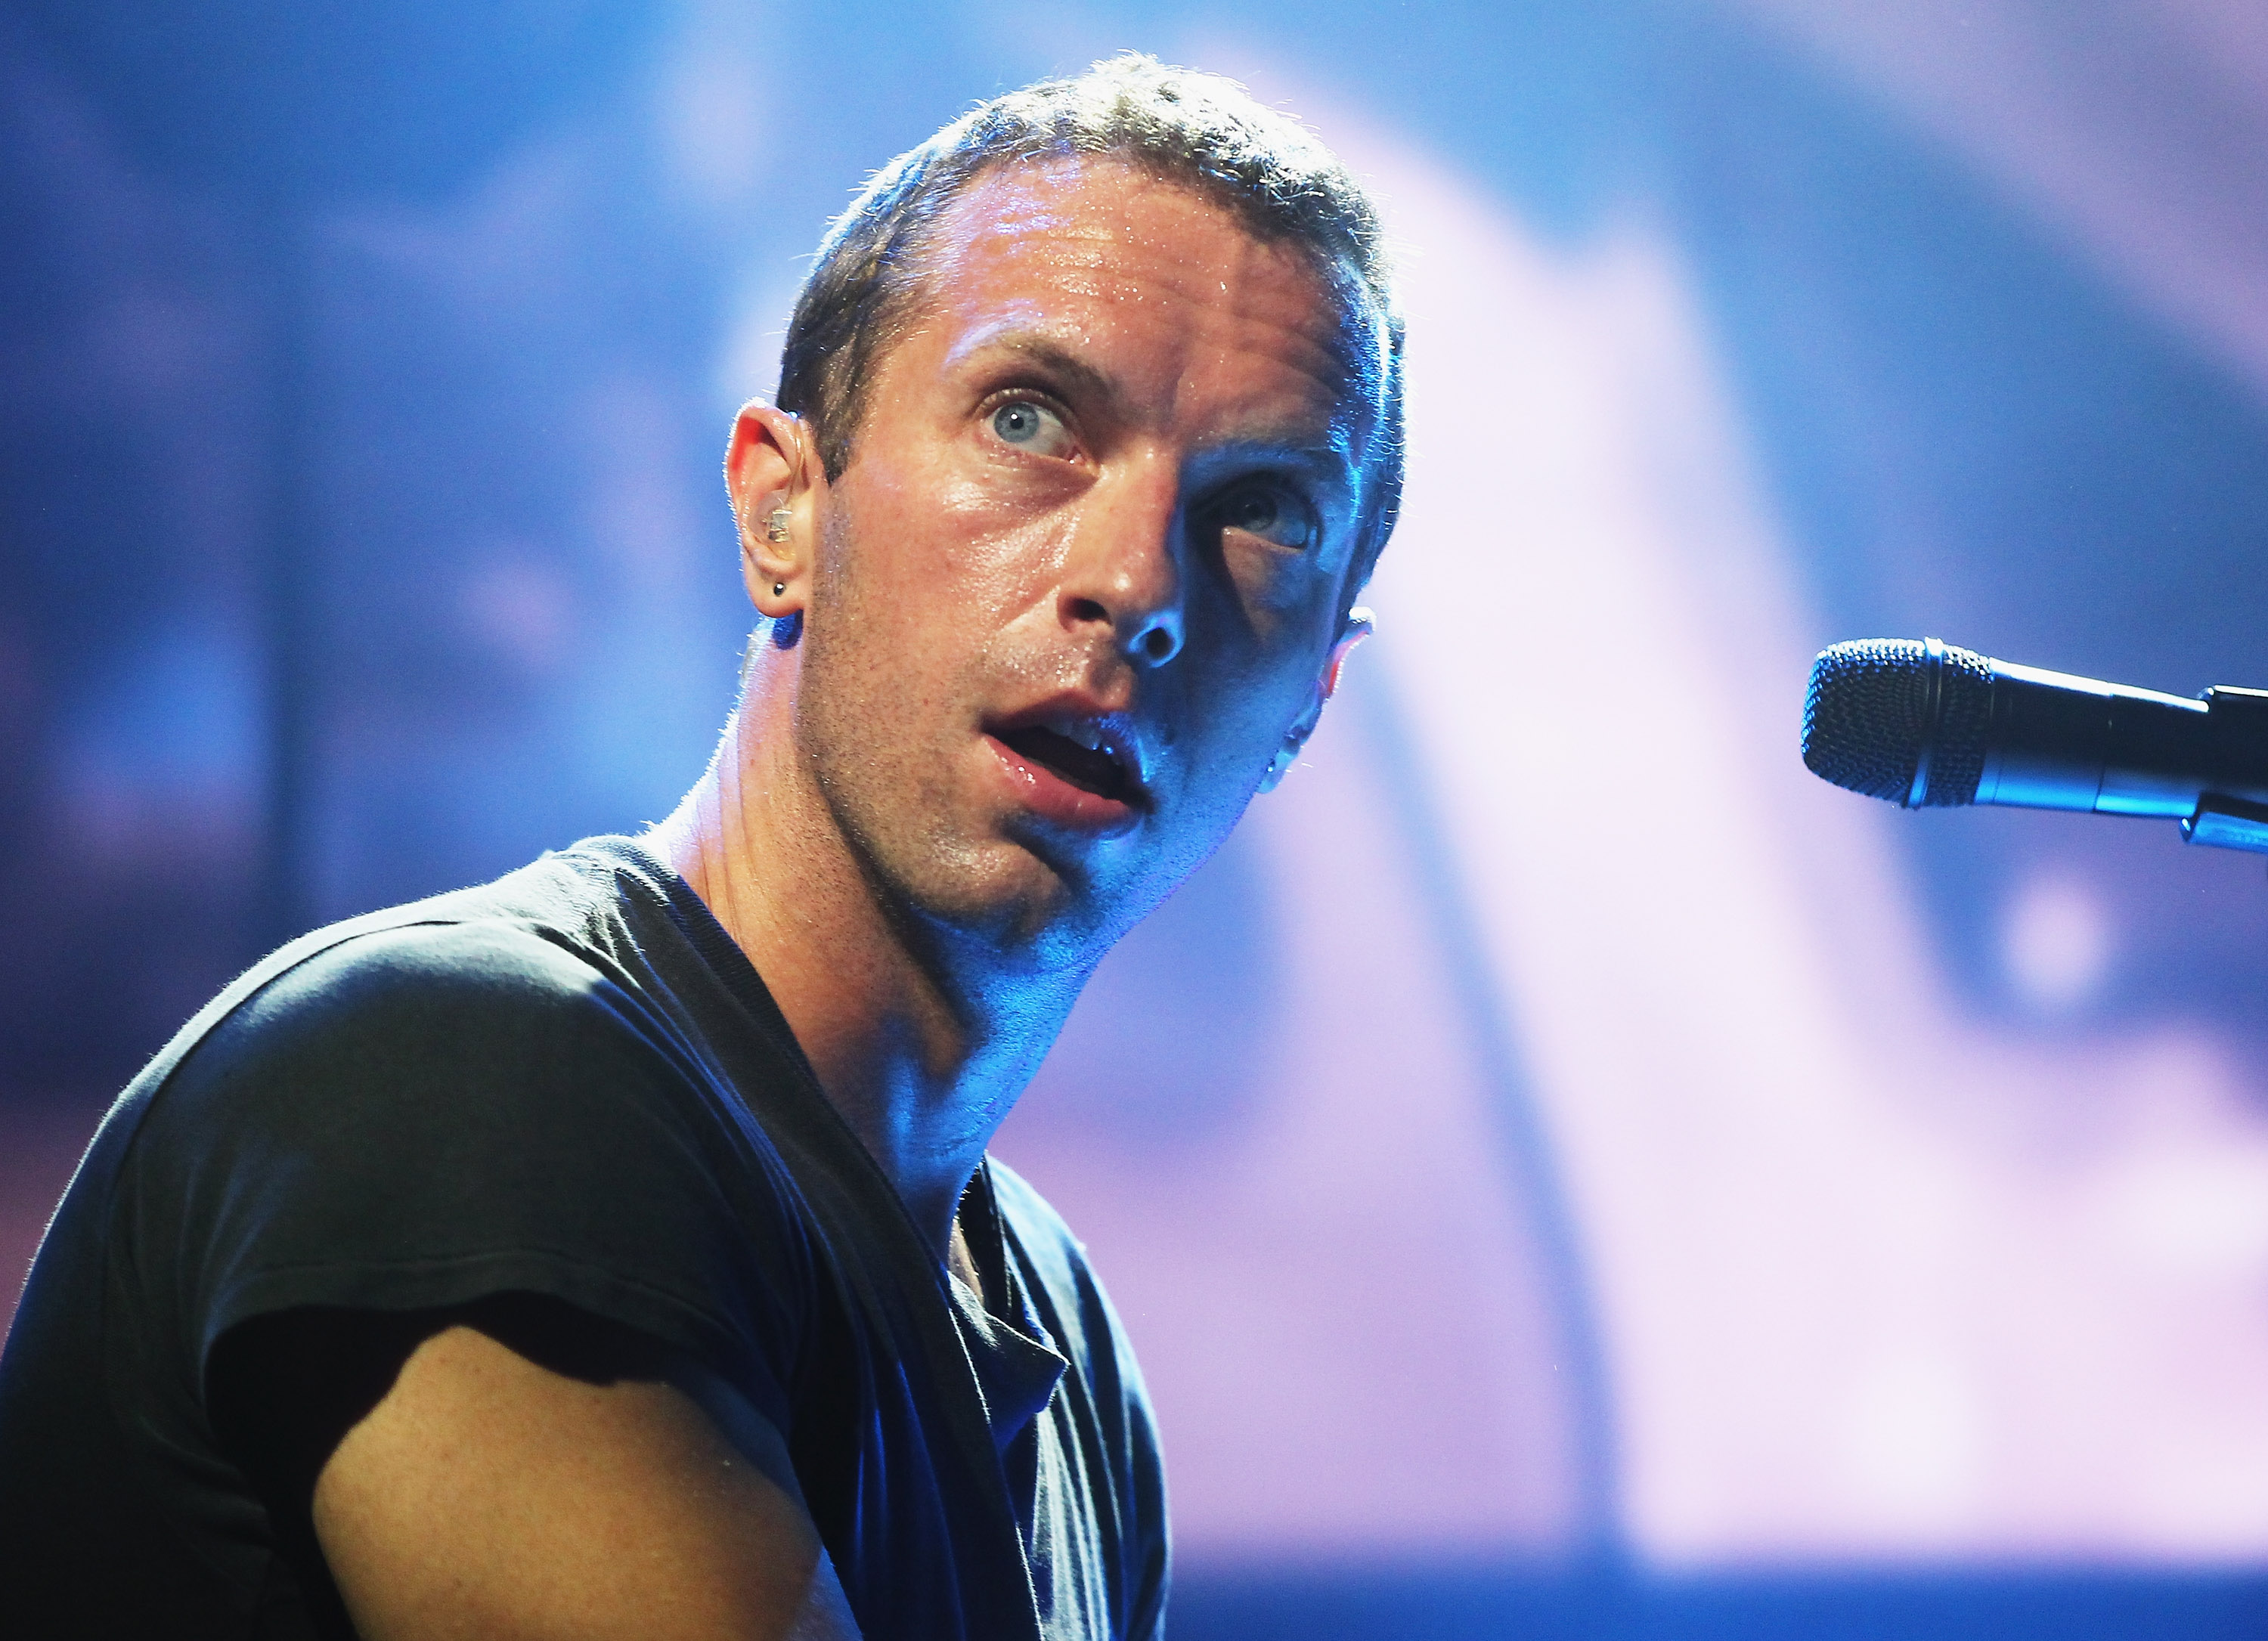 SYDNEY, AUSTRALIA - JUNE 19:  Chris Martin of Coldplay performs live for fans at Enmore Theatre on June 19, 2014 in Sydney, A